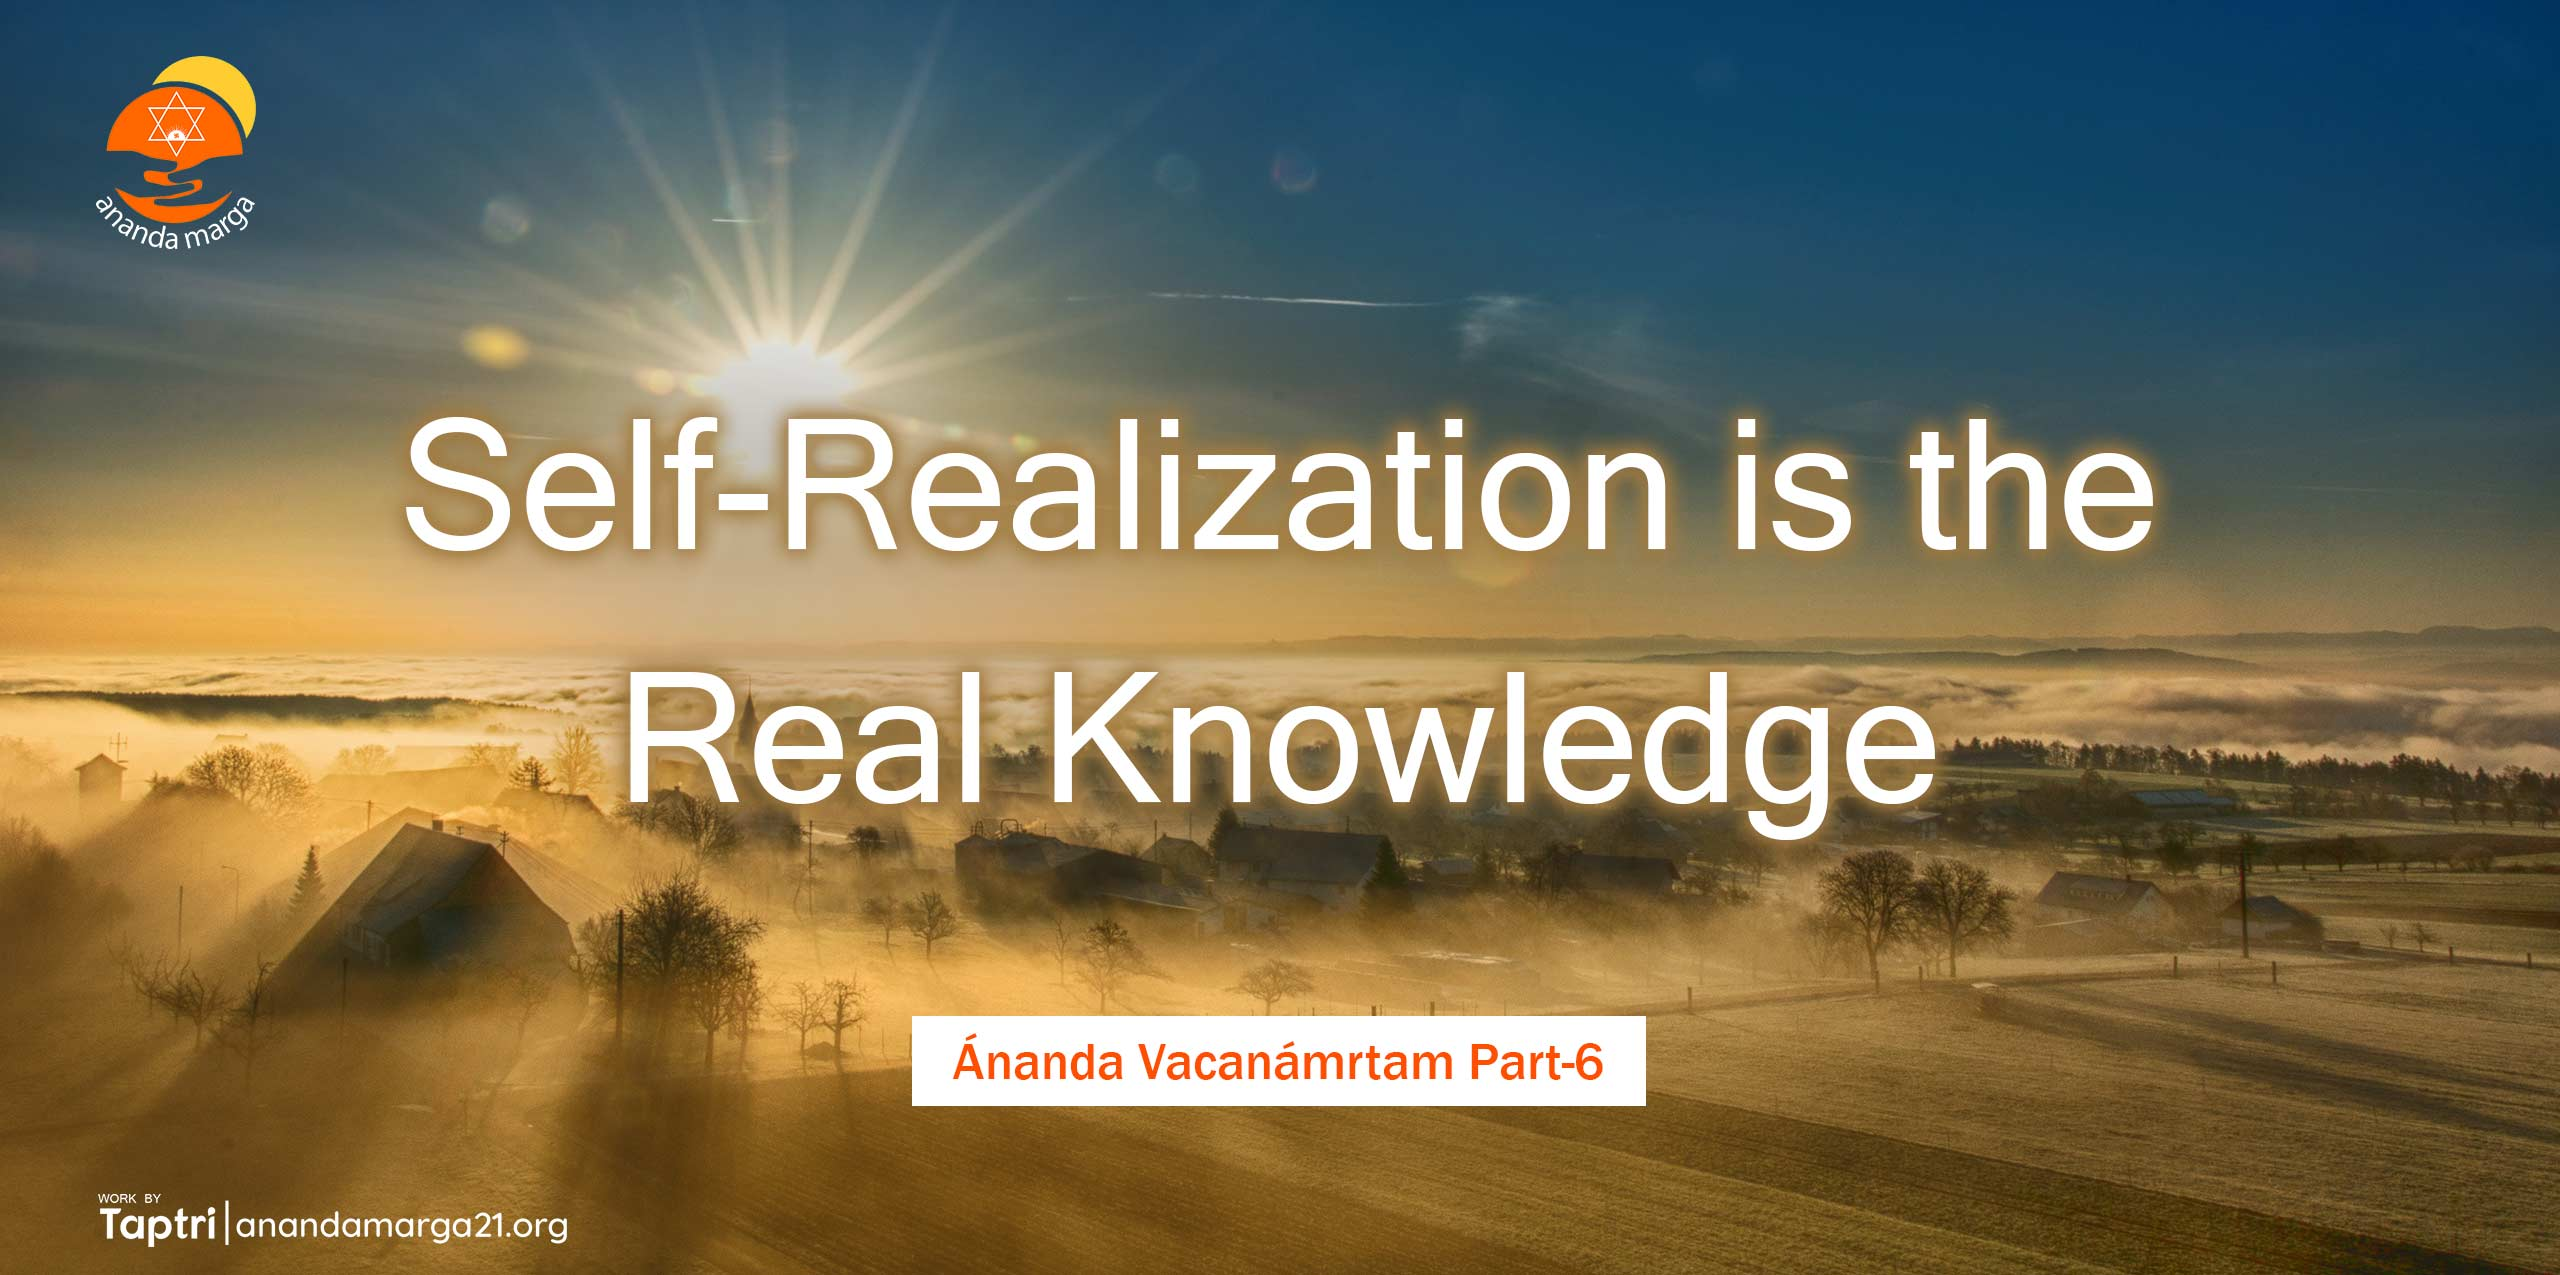 Self-Realization-is-the-Real-Knowledge-Ananda-Vacanamrtm-06-anandamarga